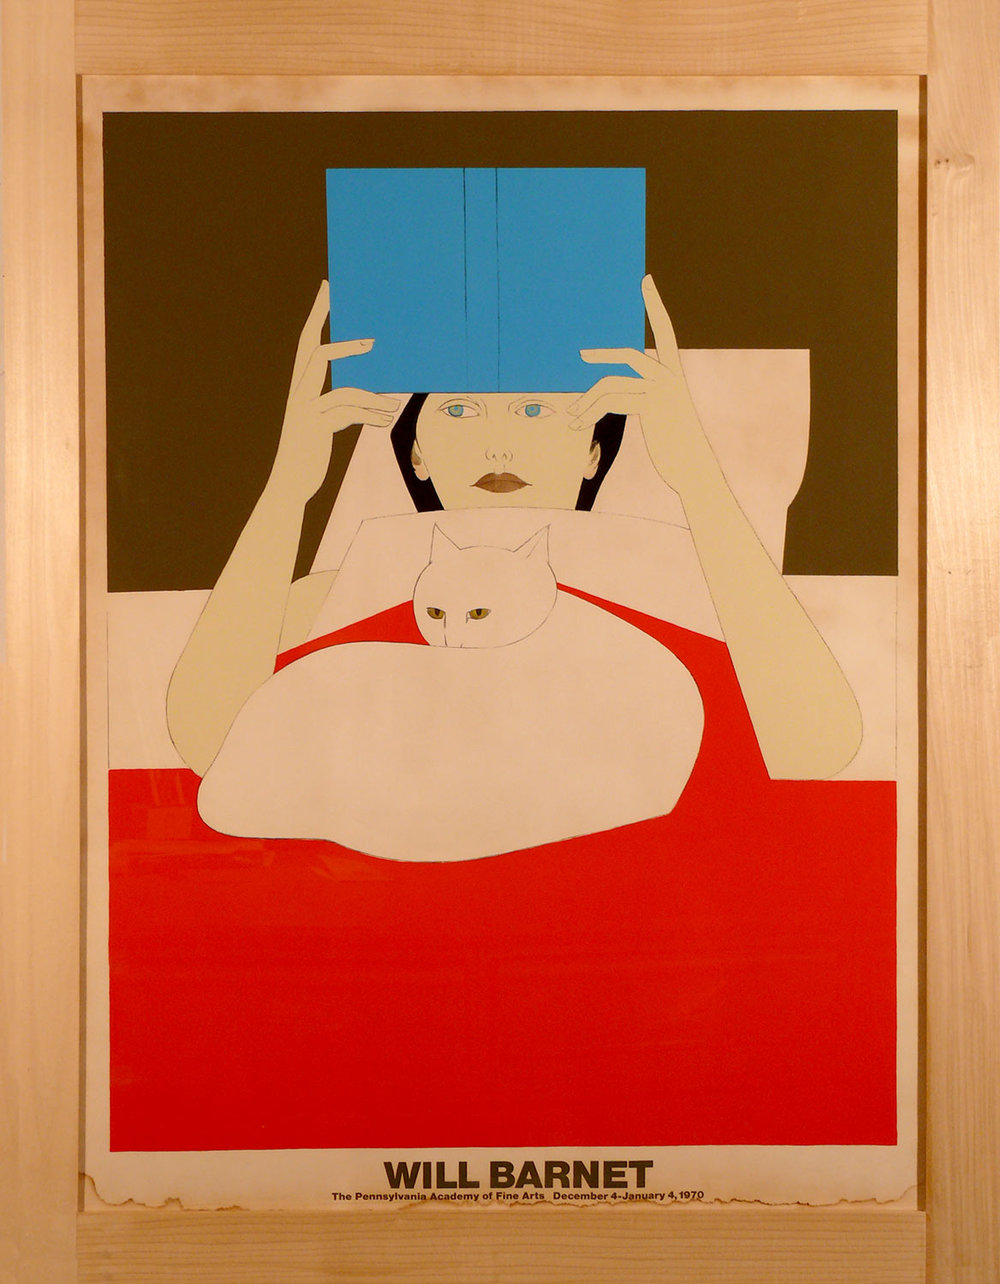 1970s / WILL BARNET / Woman with cat / framed / image 27 x 36 / frame 34 x 44 / imperfect, some visible water damage on the border